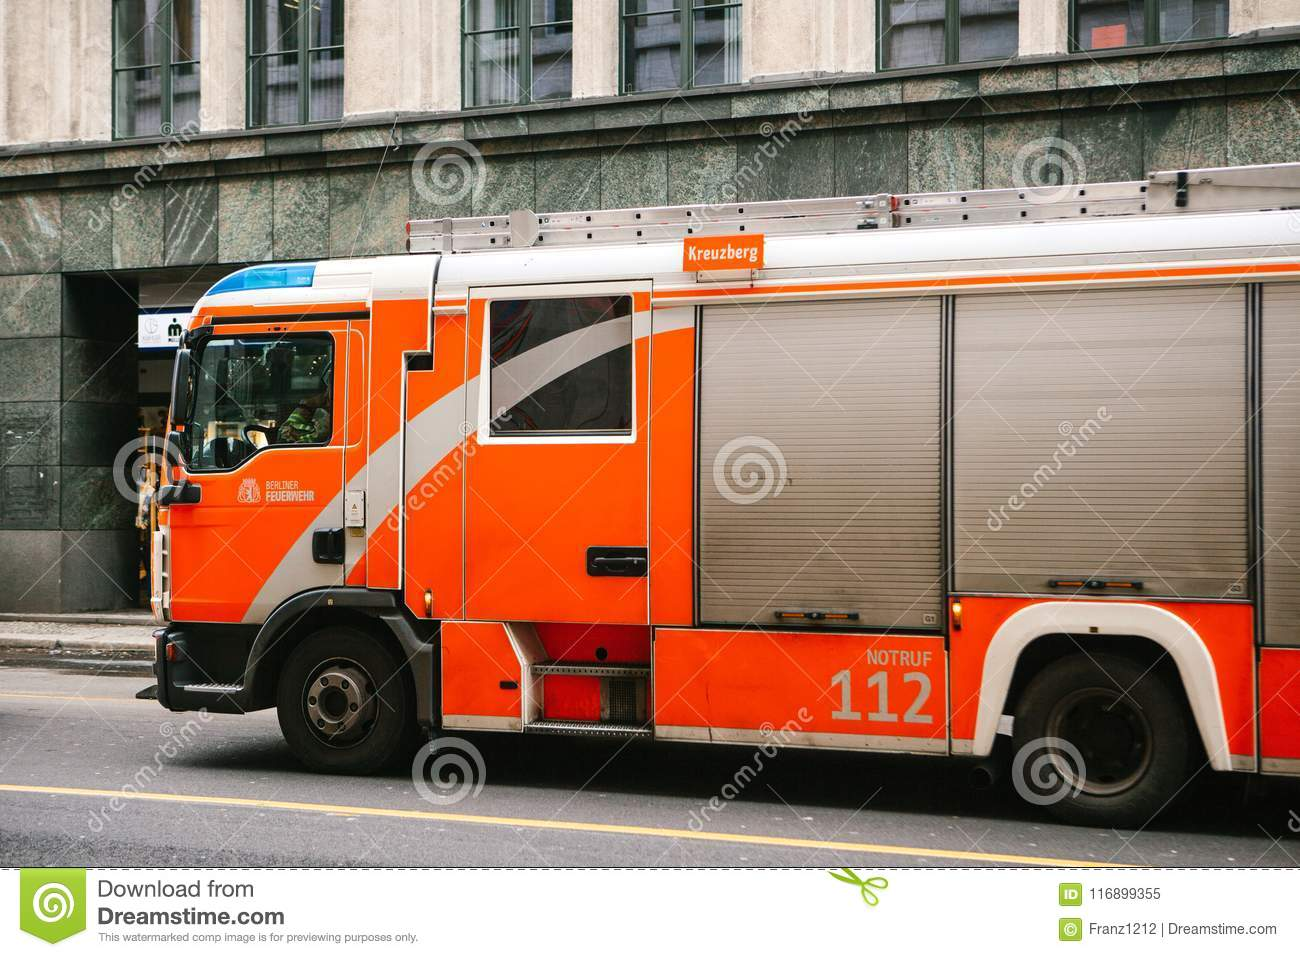 Berlin, Germany 15 February 2018: modern German fire truck moving on the street in the city